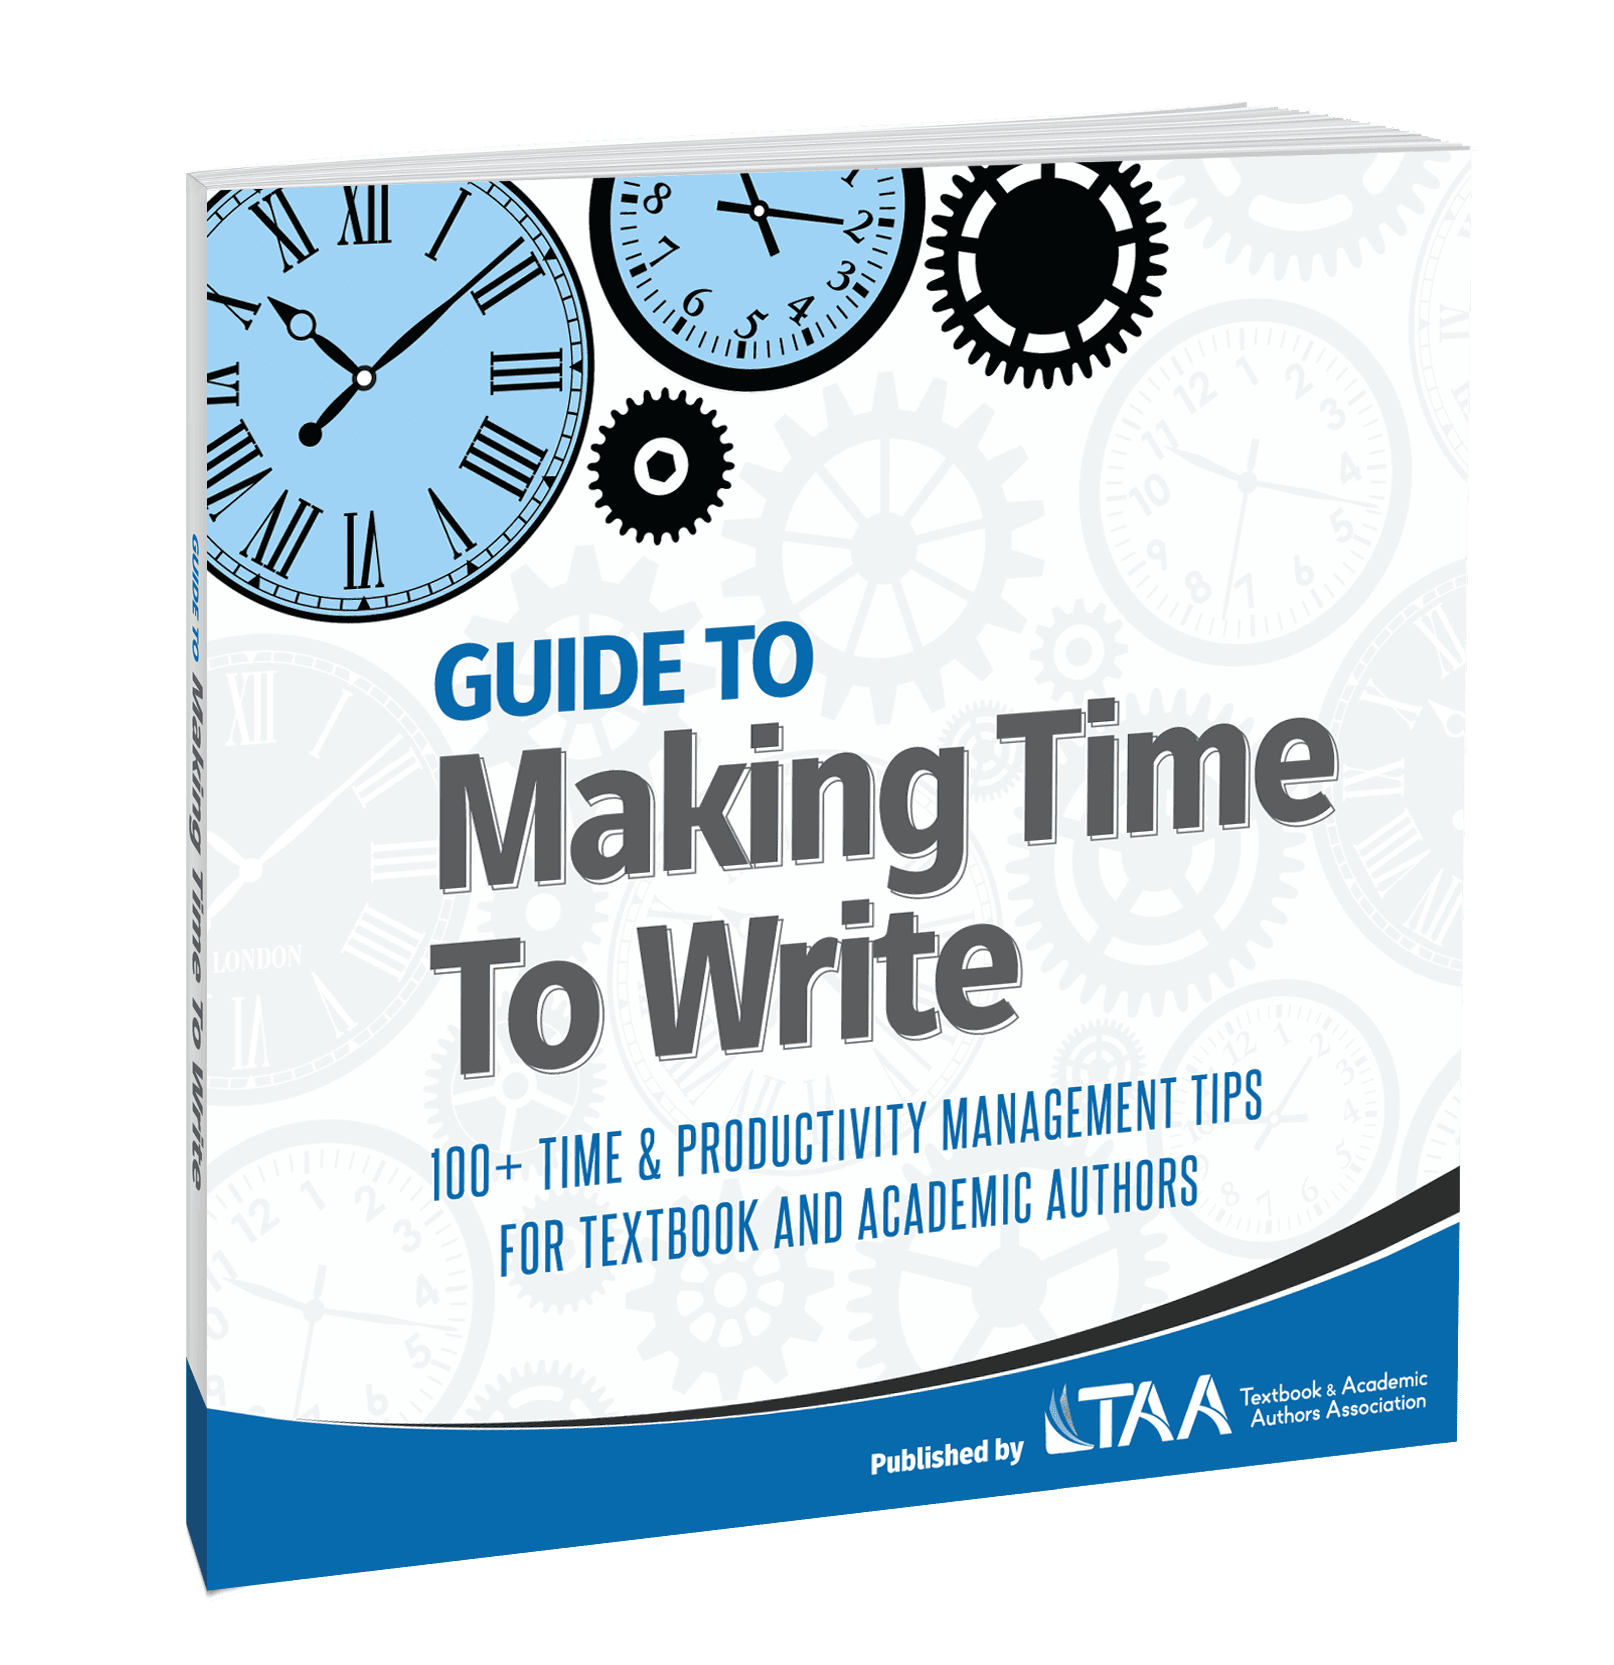 Guide to Making Time to Write